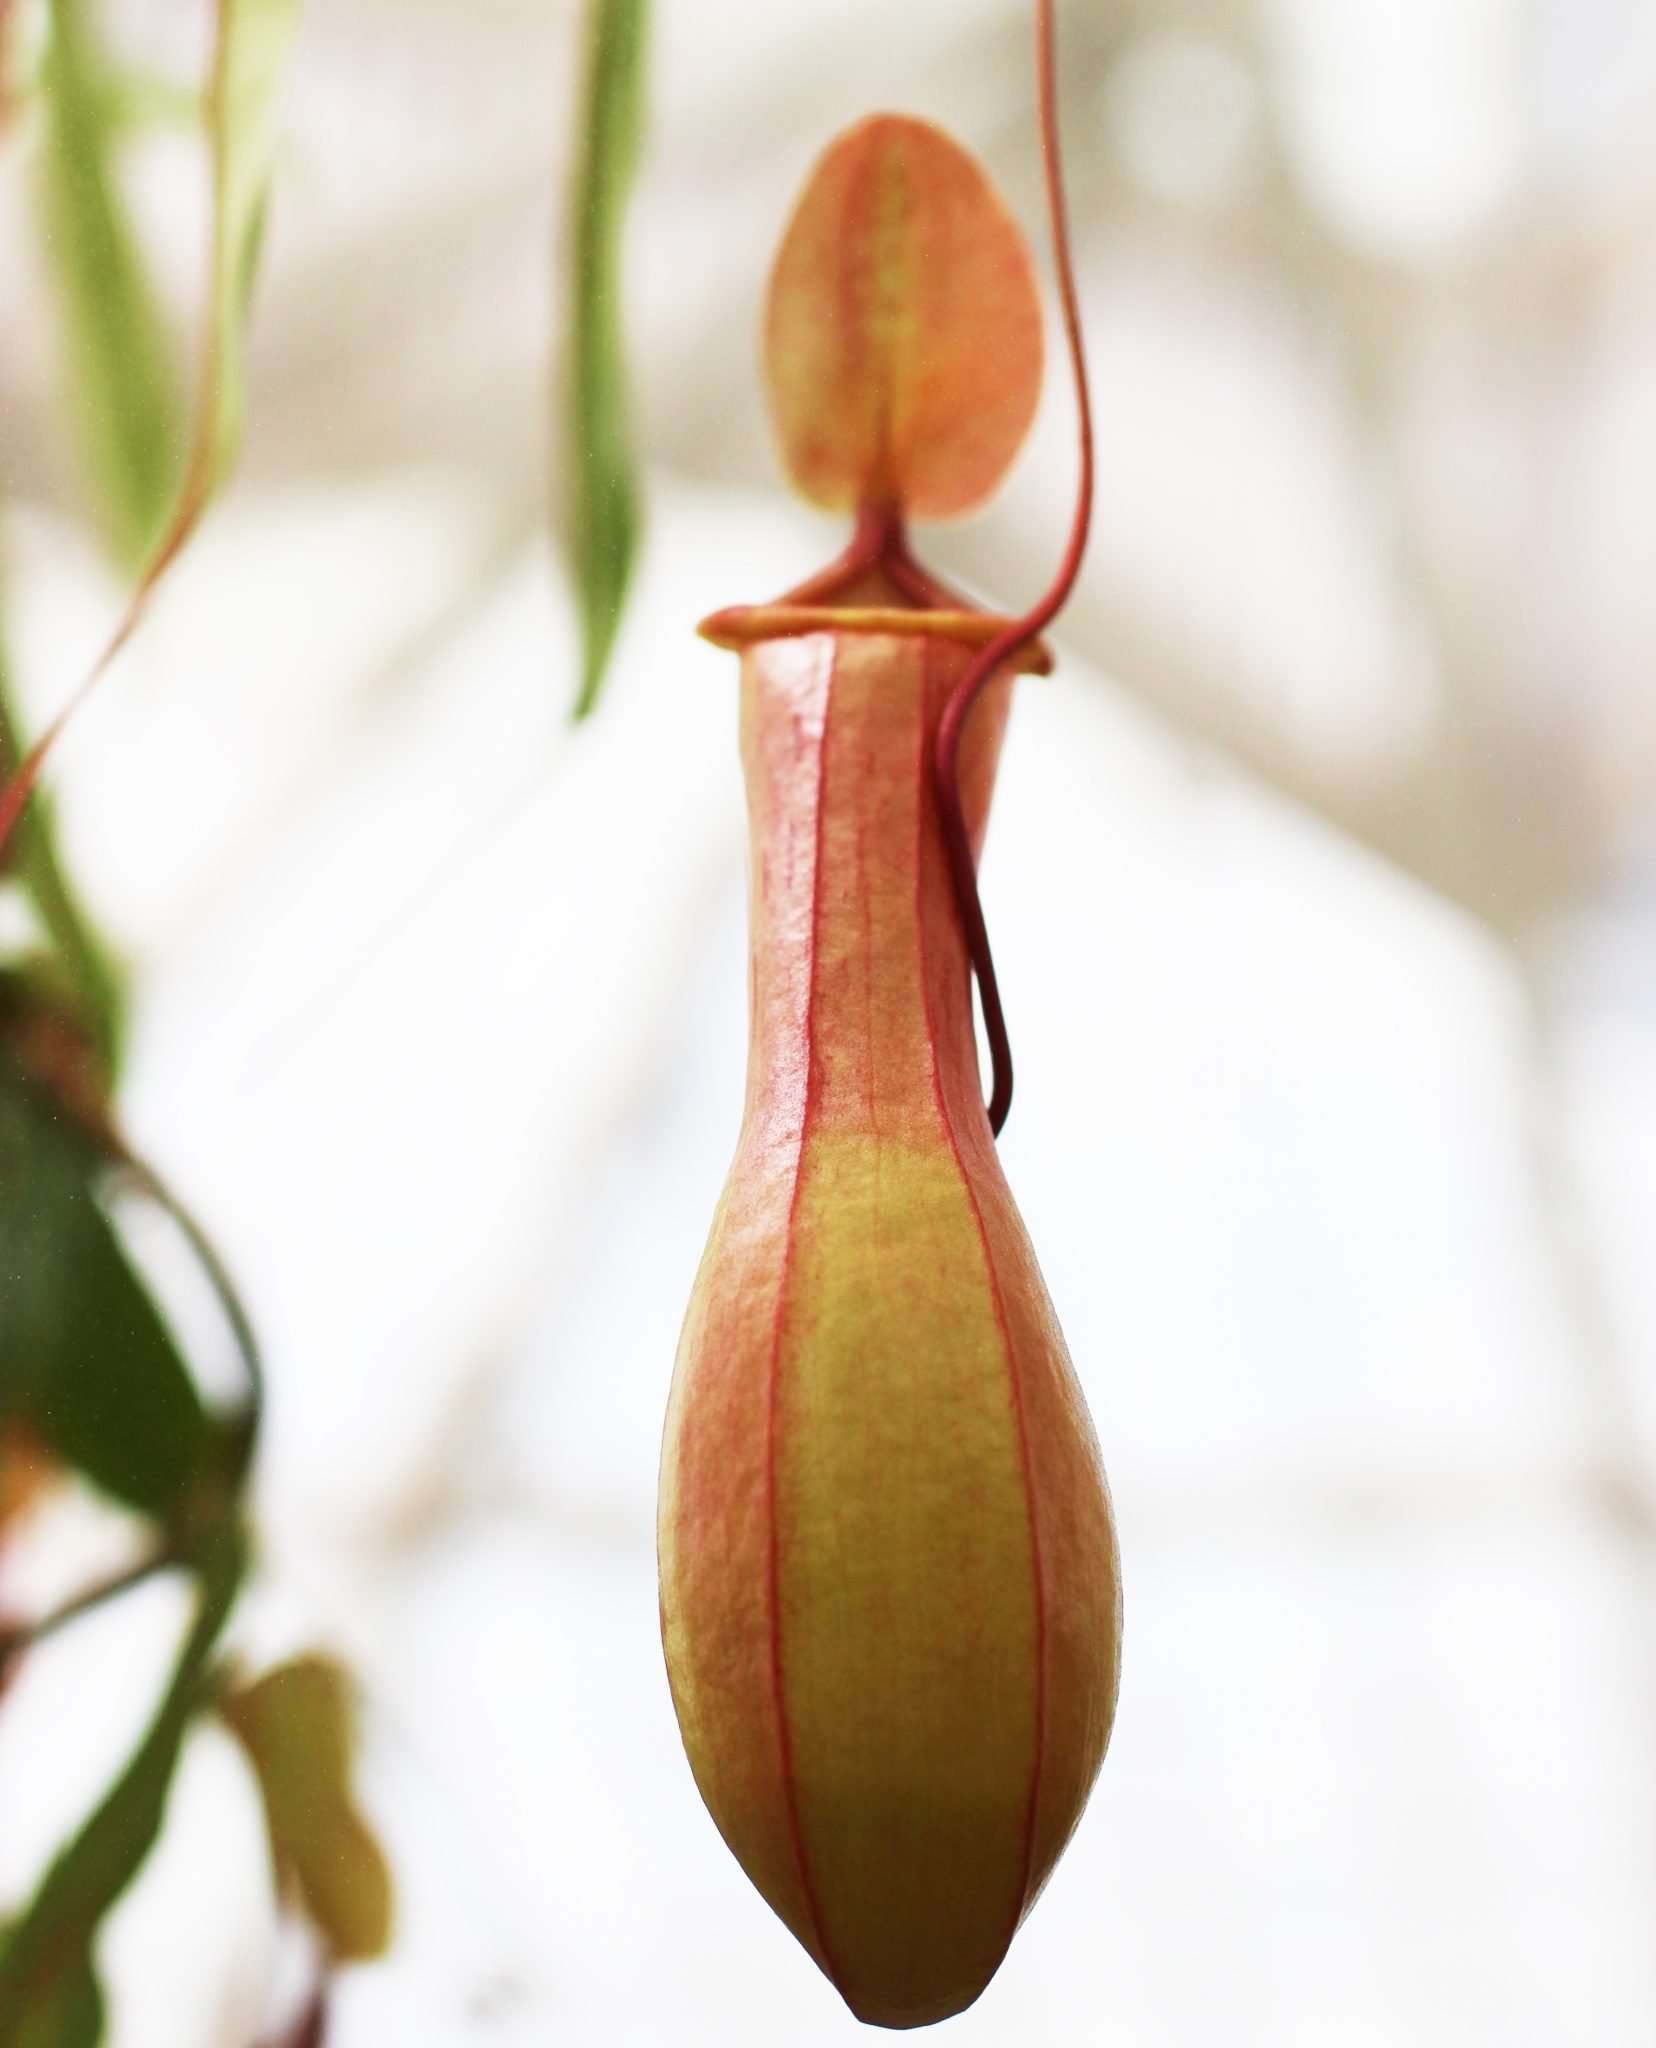 How to Care for Nepenthes (Tropical Pitcher Plants) How to Care for Nepenthes (Tropical Pitcher Plants) new picture